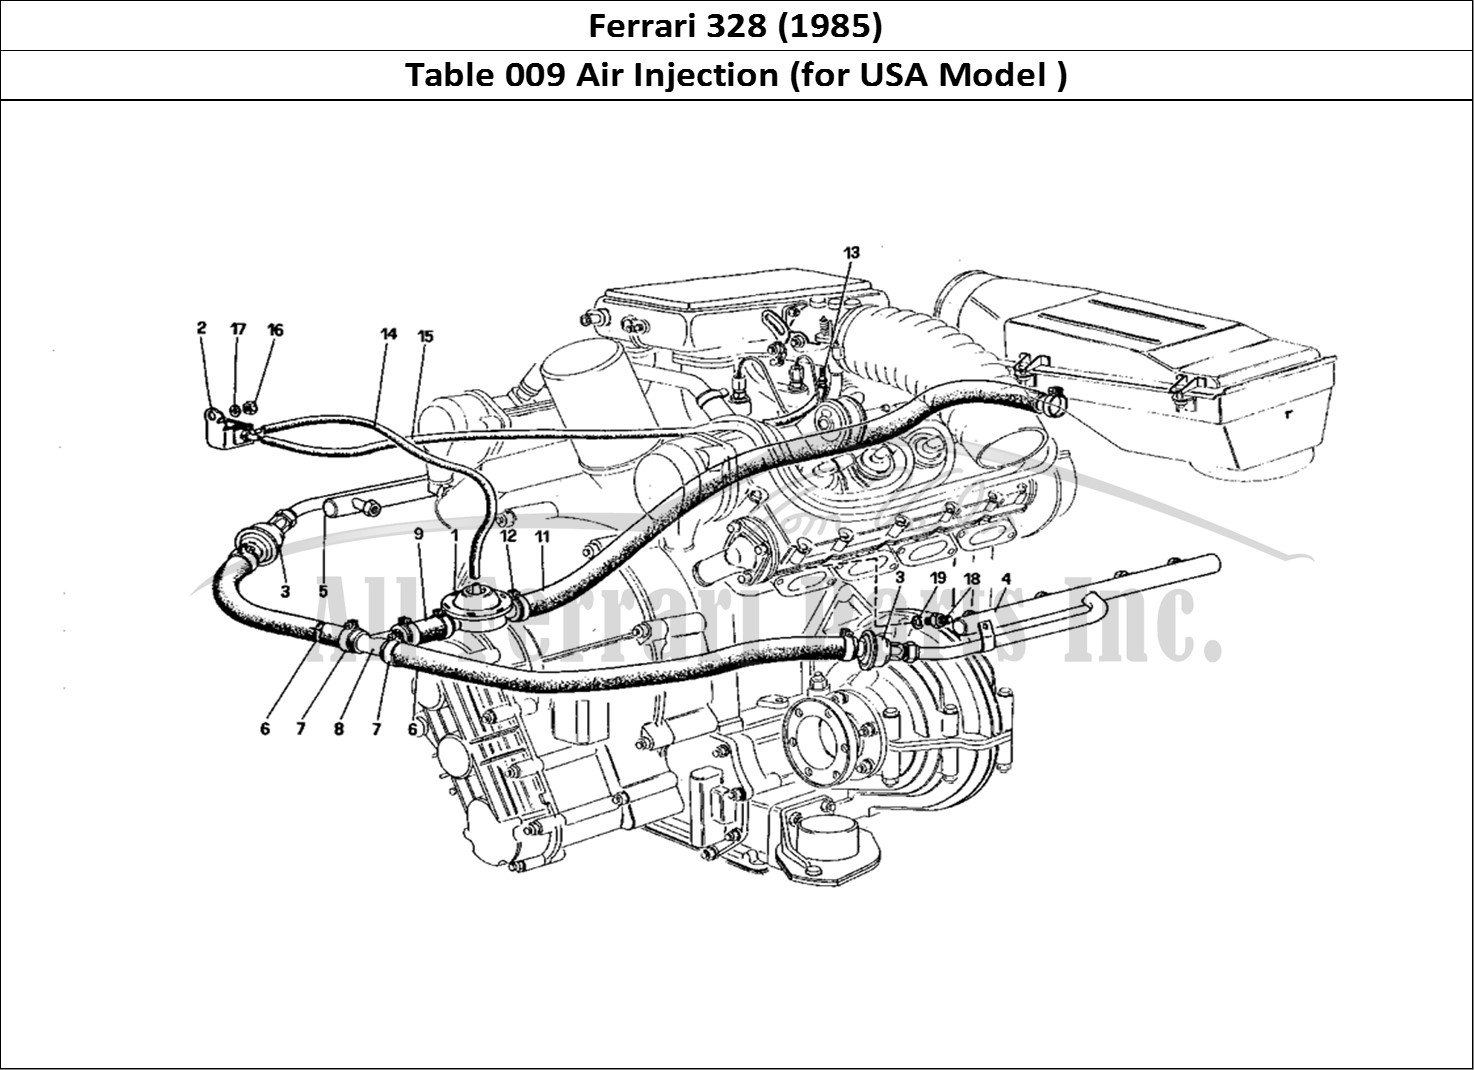 Buy original Ferrari 328 (1985) 009 Air Injection (for USA